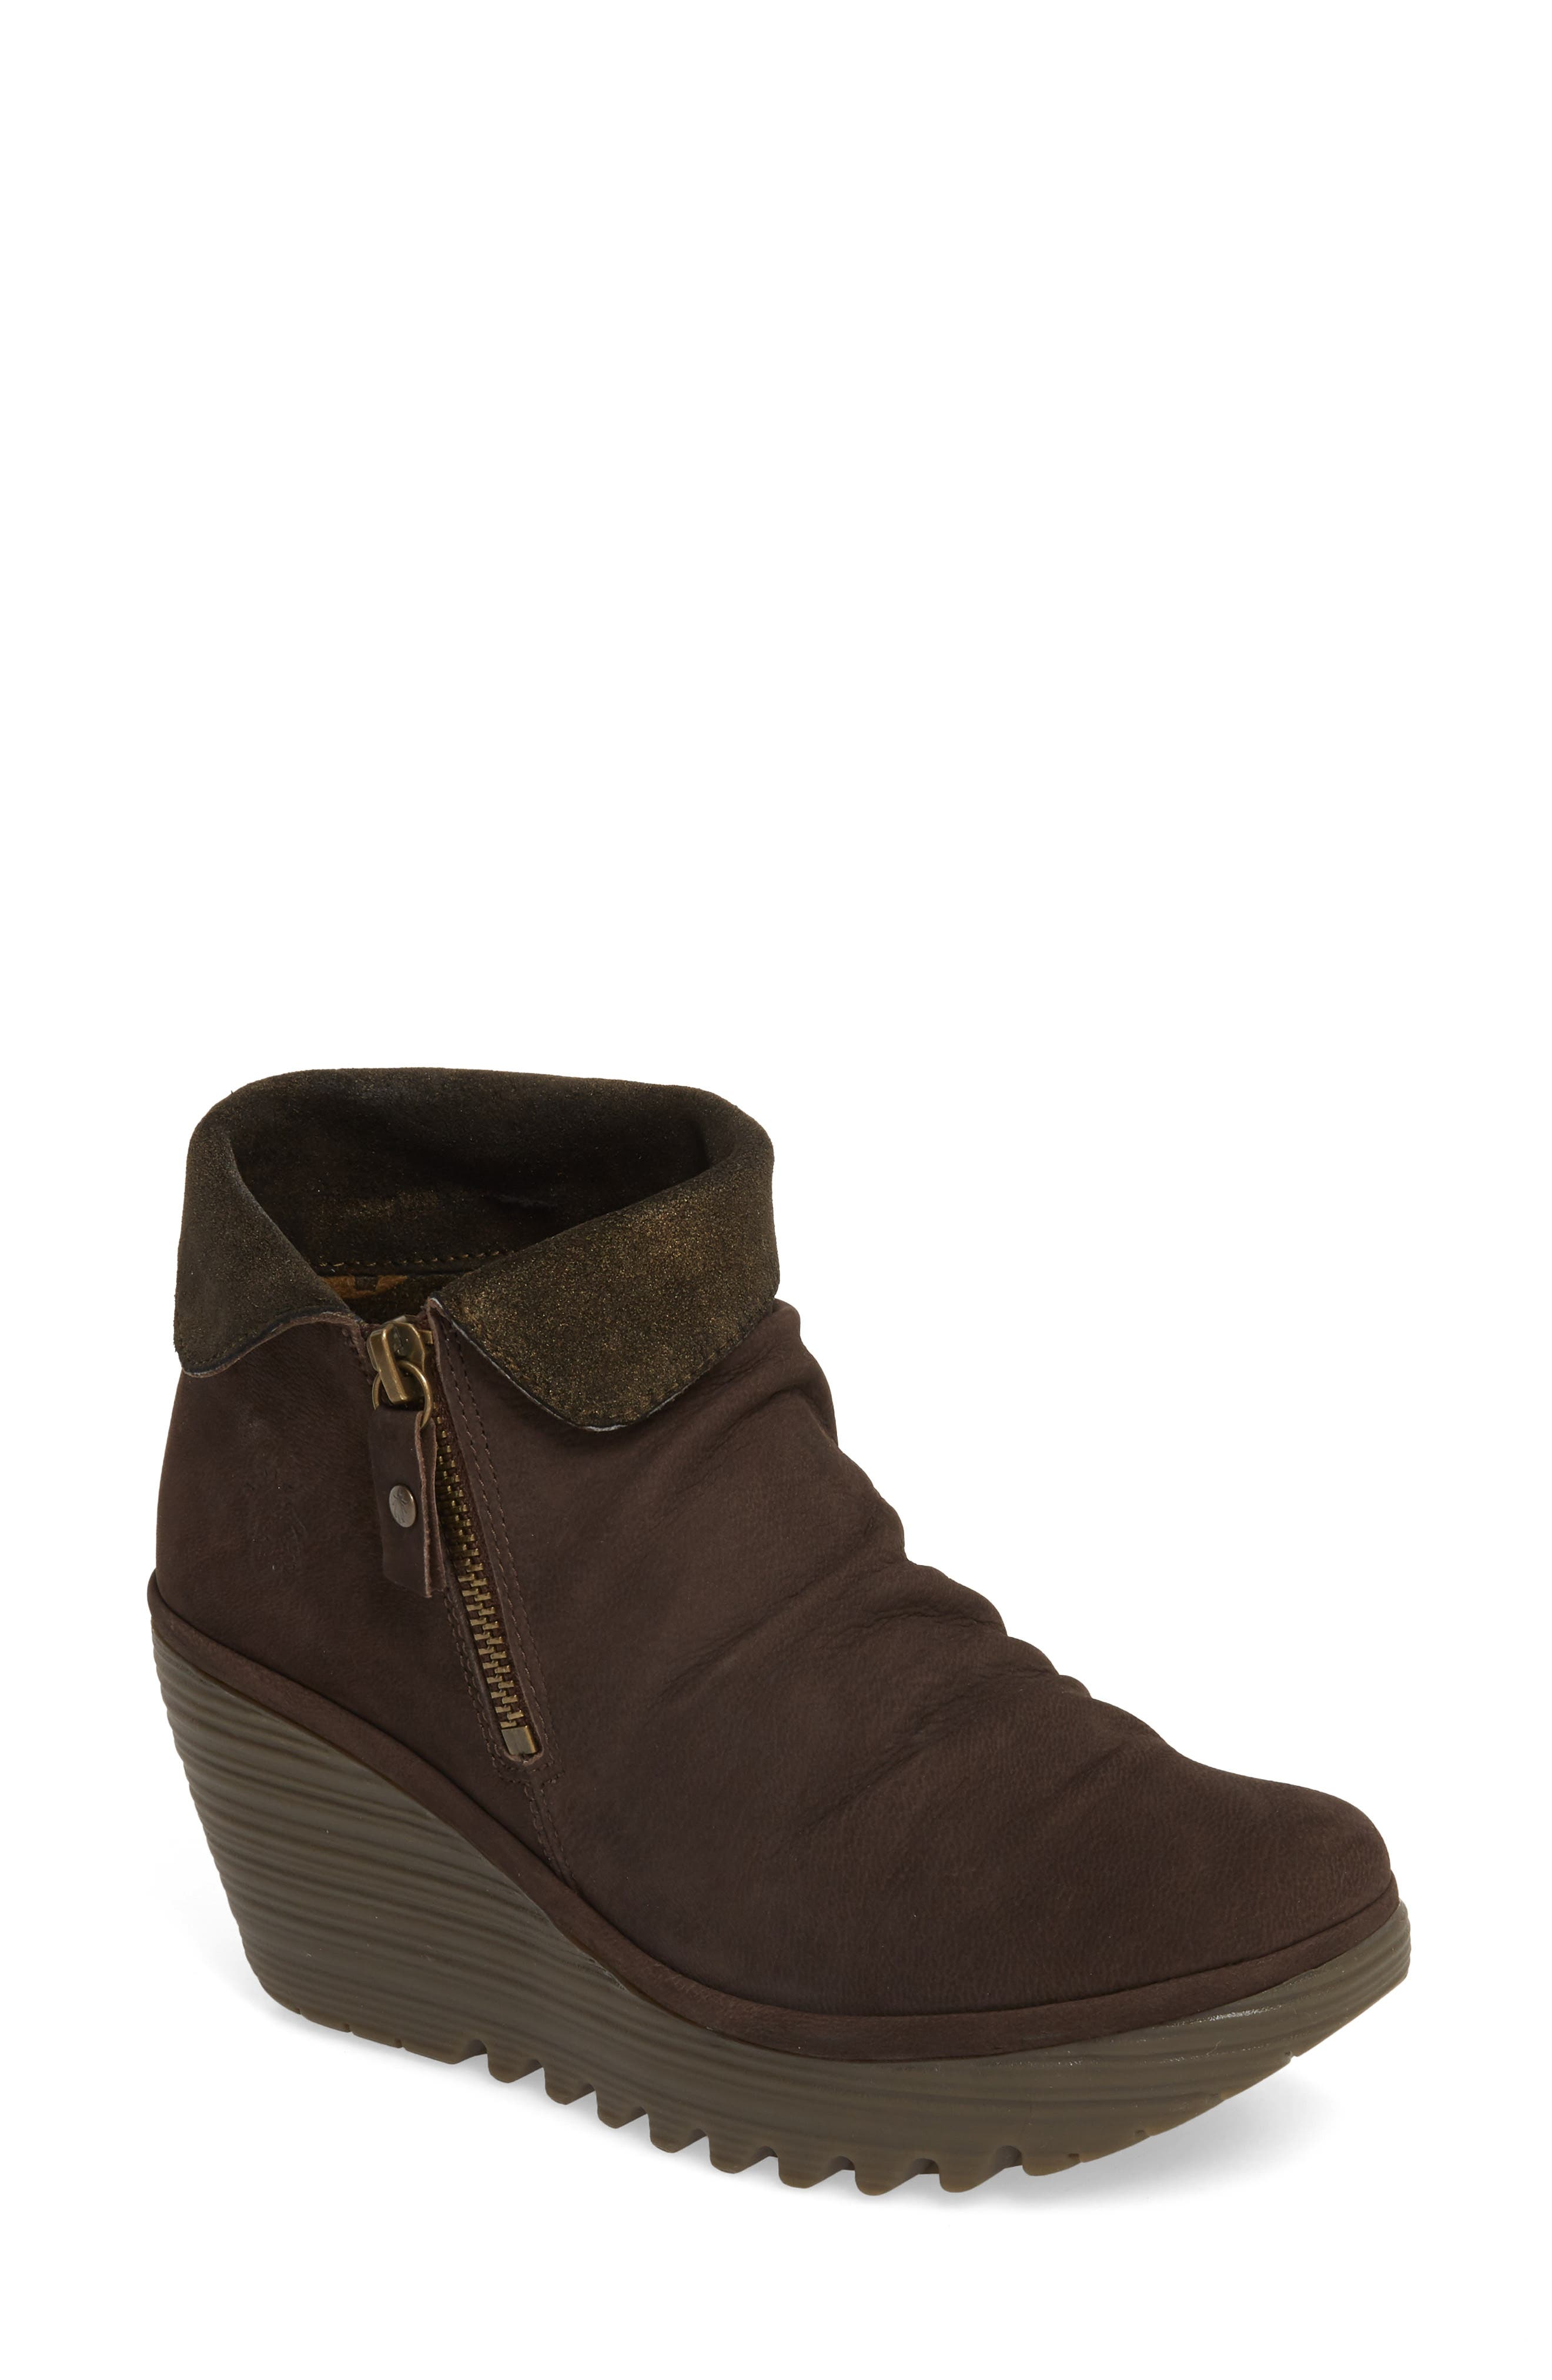 Fly London Yoxi Wedge Bootie, Brown